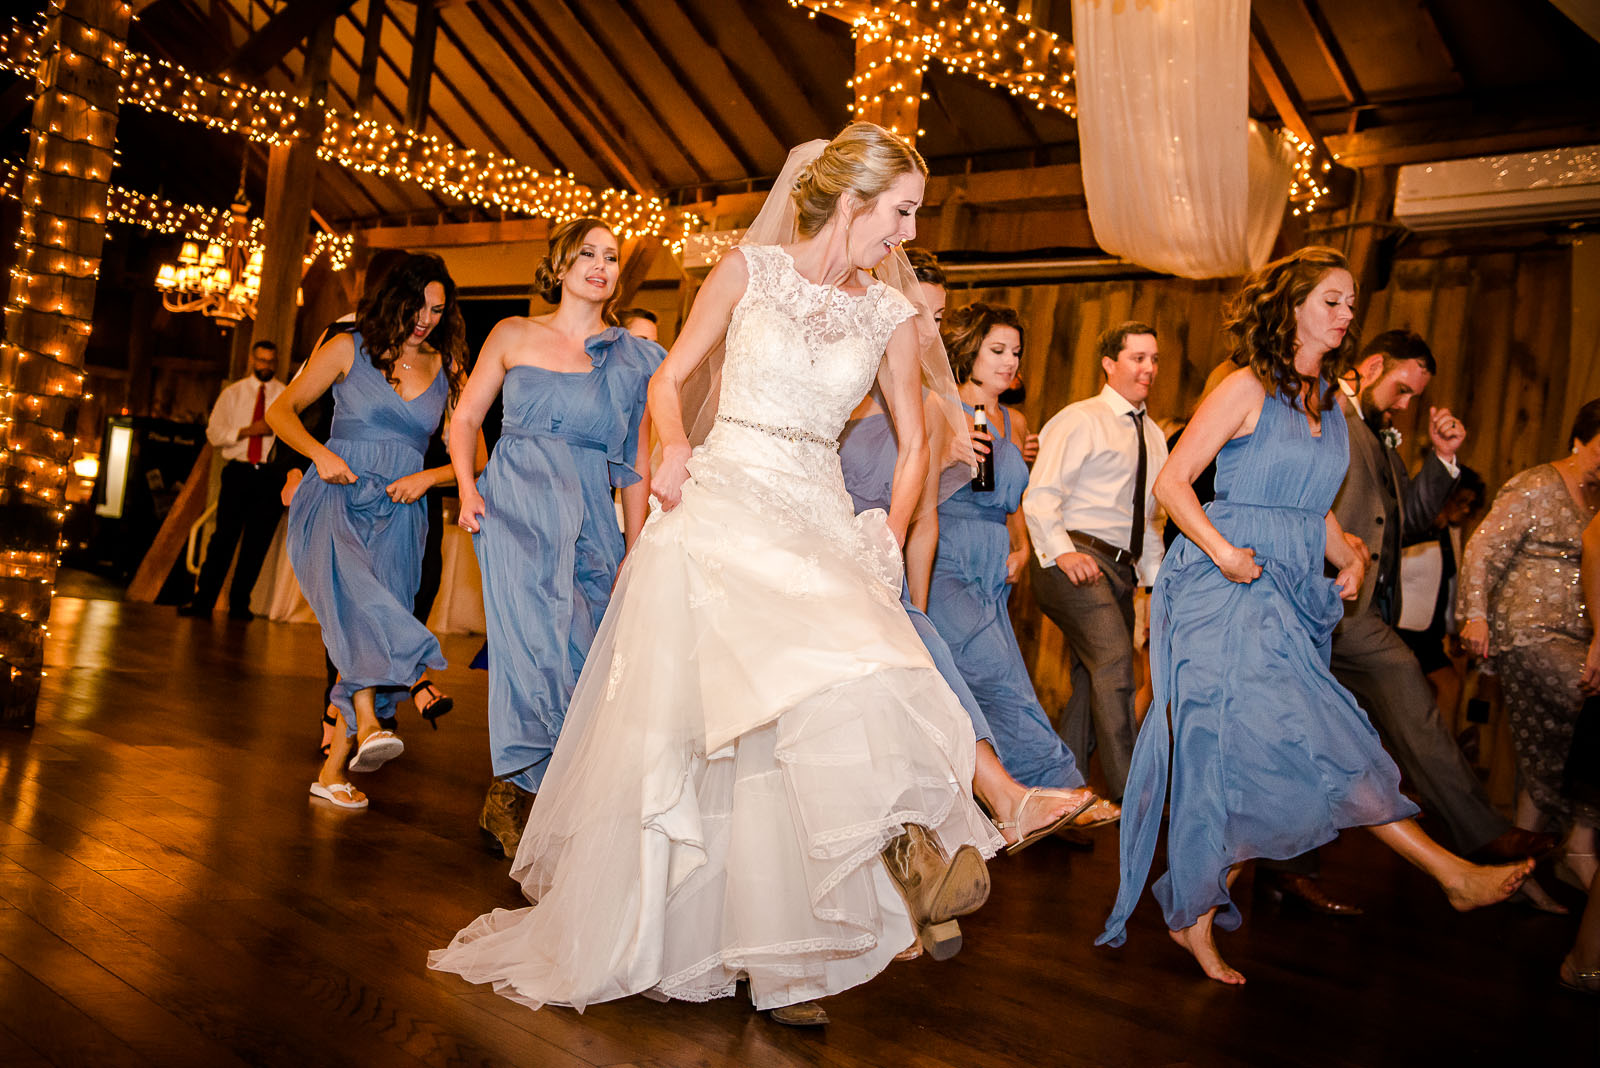 Eric_and_Christy_Photography_Blog_Wedding_Kelly_Matt-73